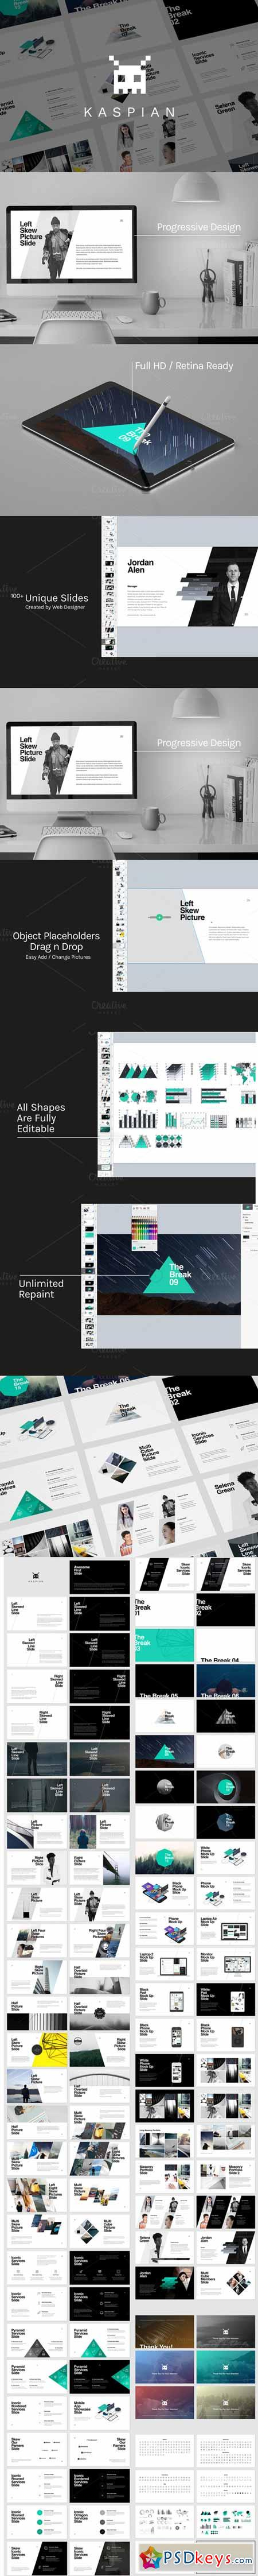 Kaspian - Unique PowerPoint Template 448095